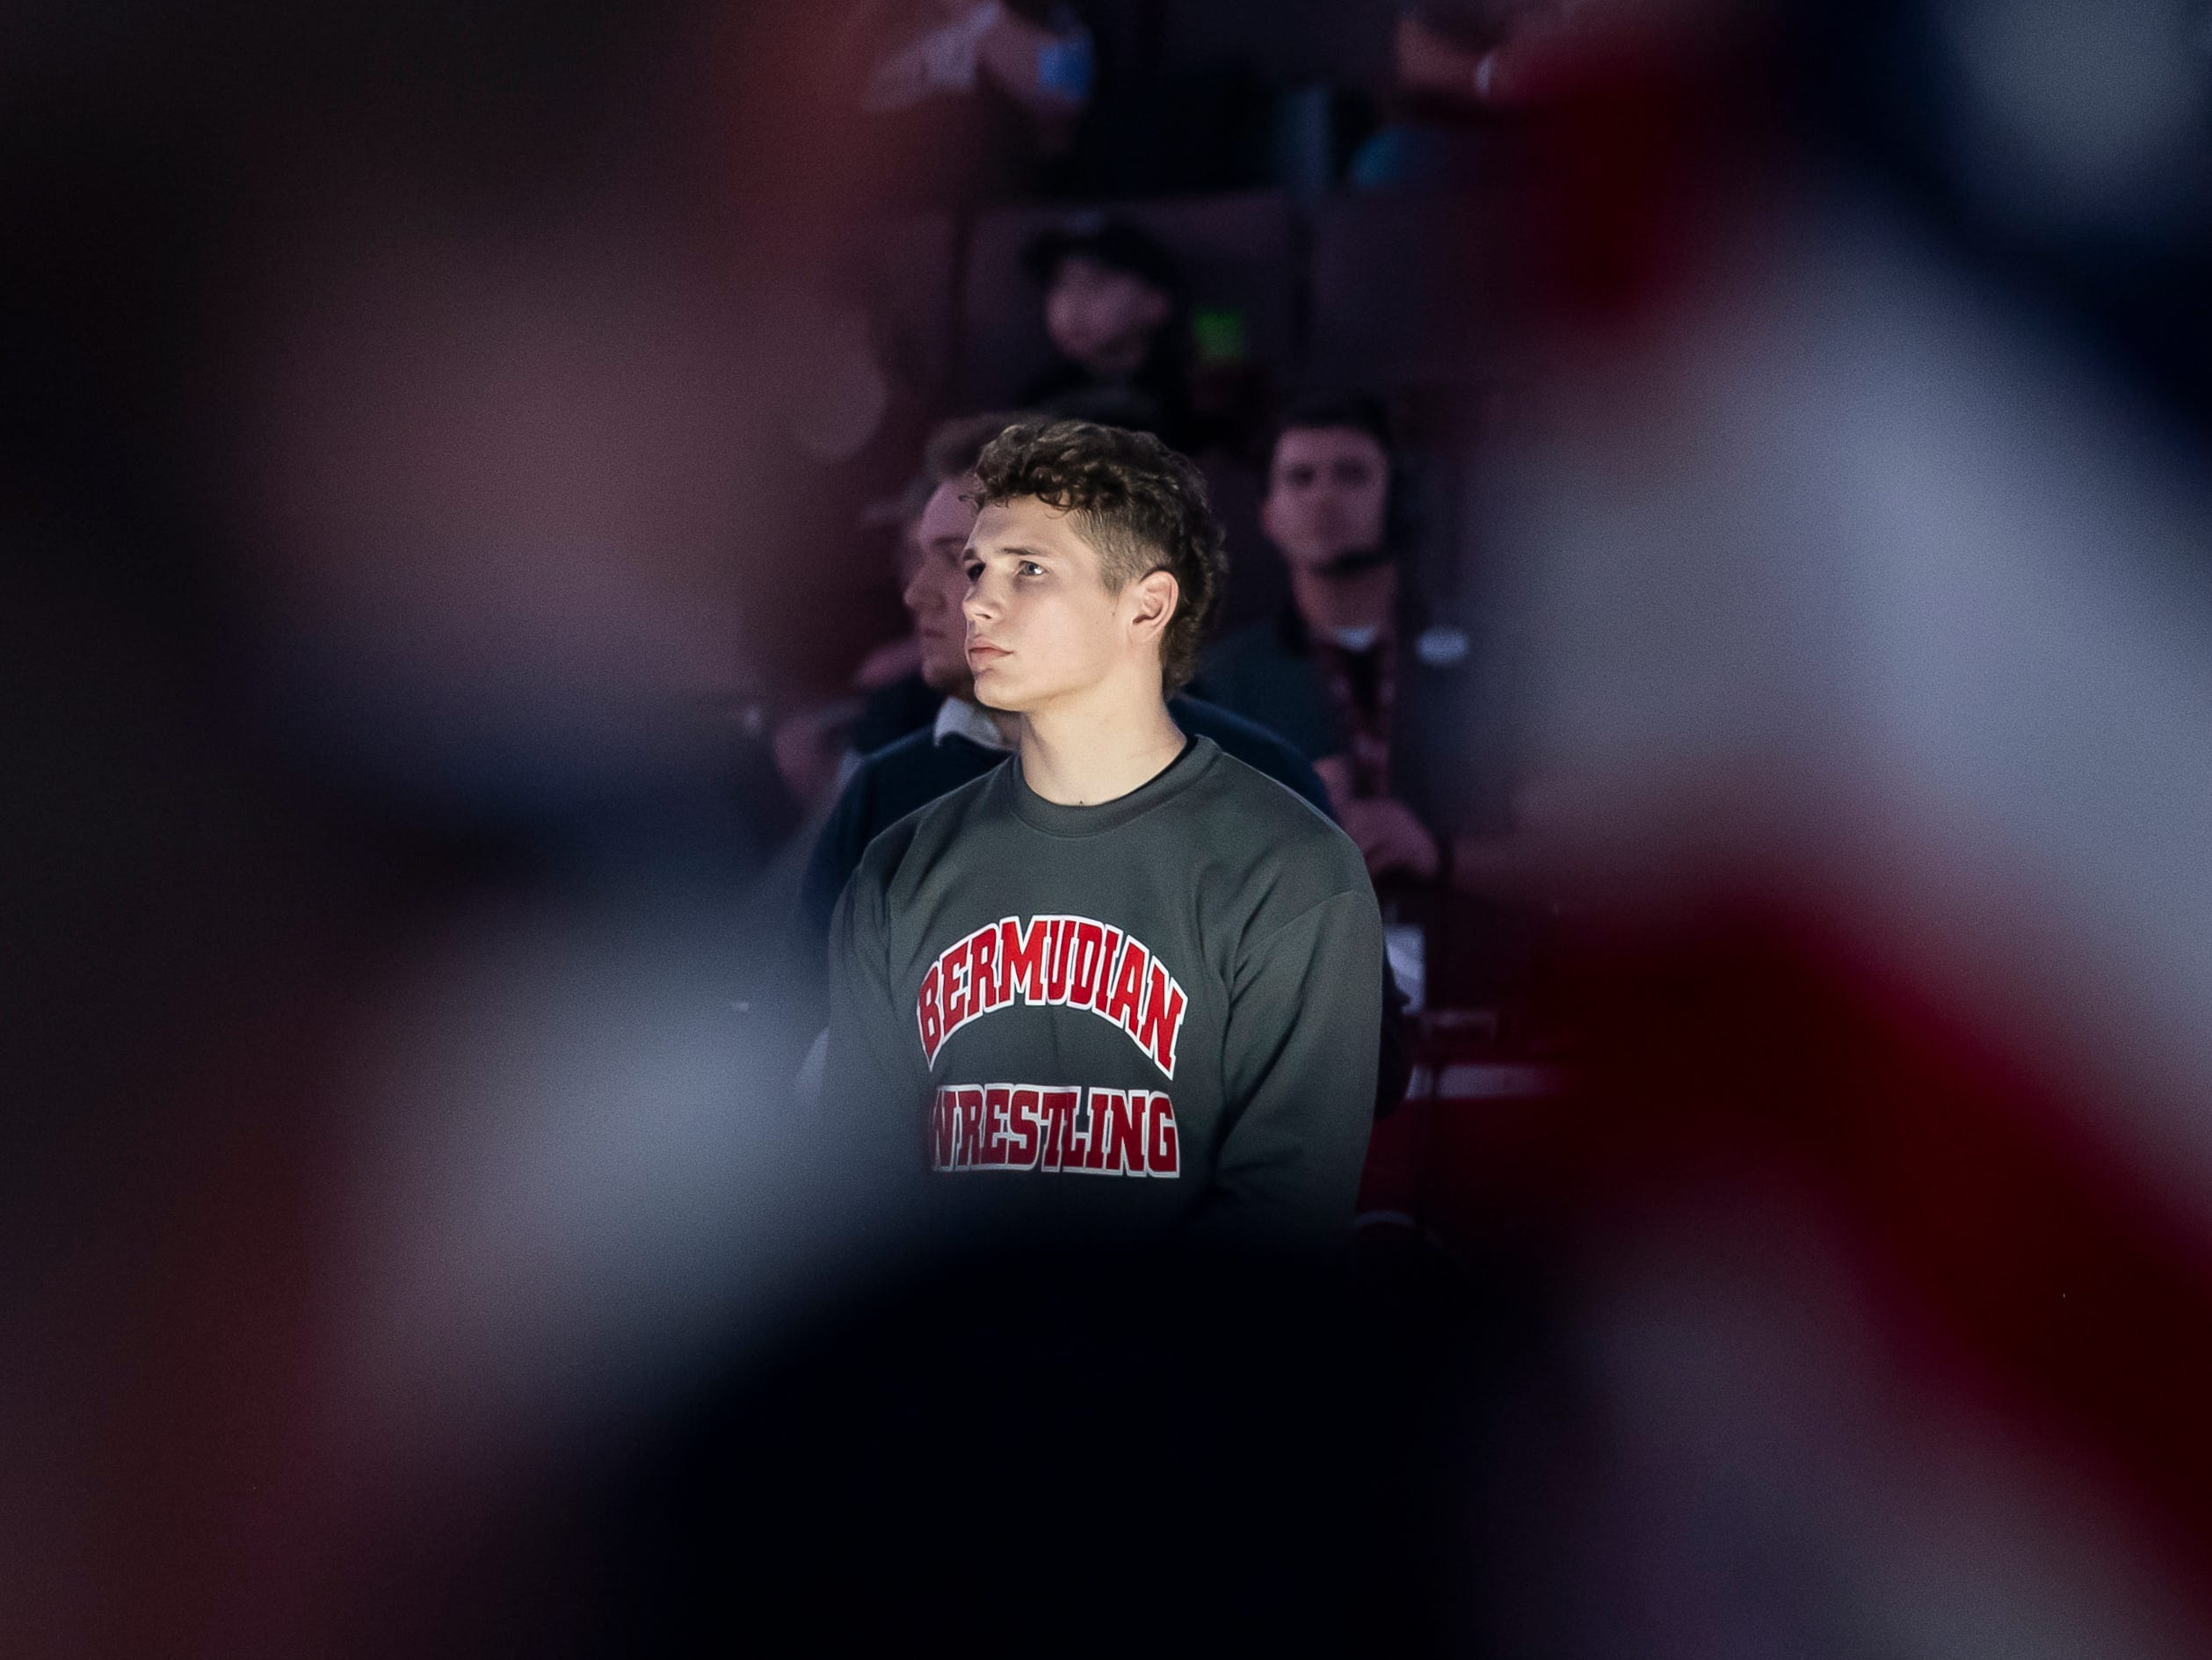 Bermudian Springs' Trenton Harder participates in the Parade of Champions prior to wrestling in the 2A 152-pound 5th-place bout at the PIAA championships in the Giant Center in Hershey Saturday, March 9, 2019.